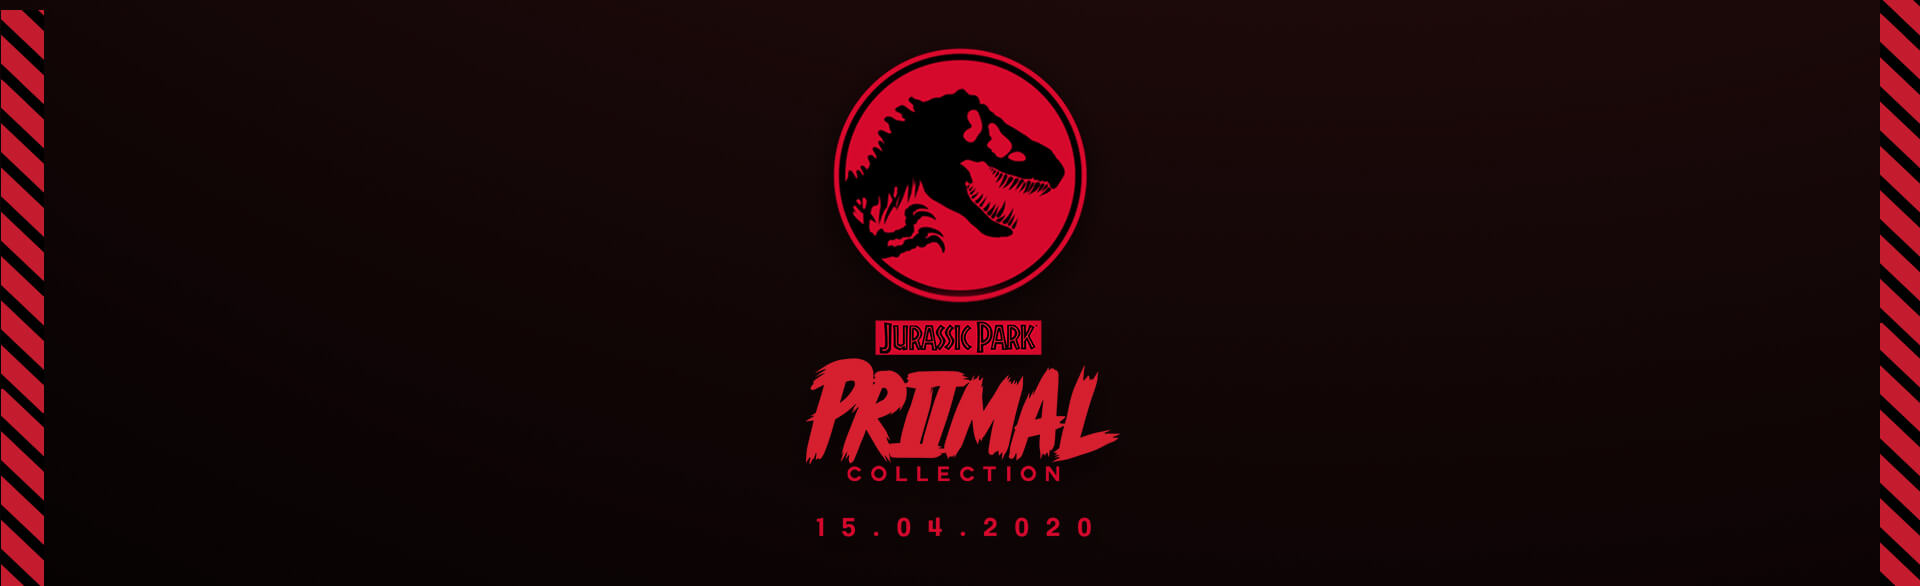 JURASSIC PARK PRIMAL COLLECTION SIGN UP